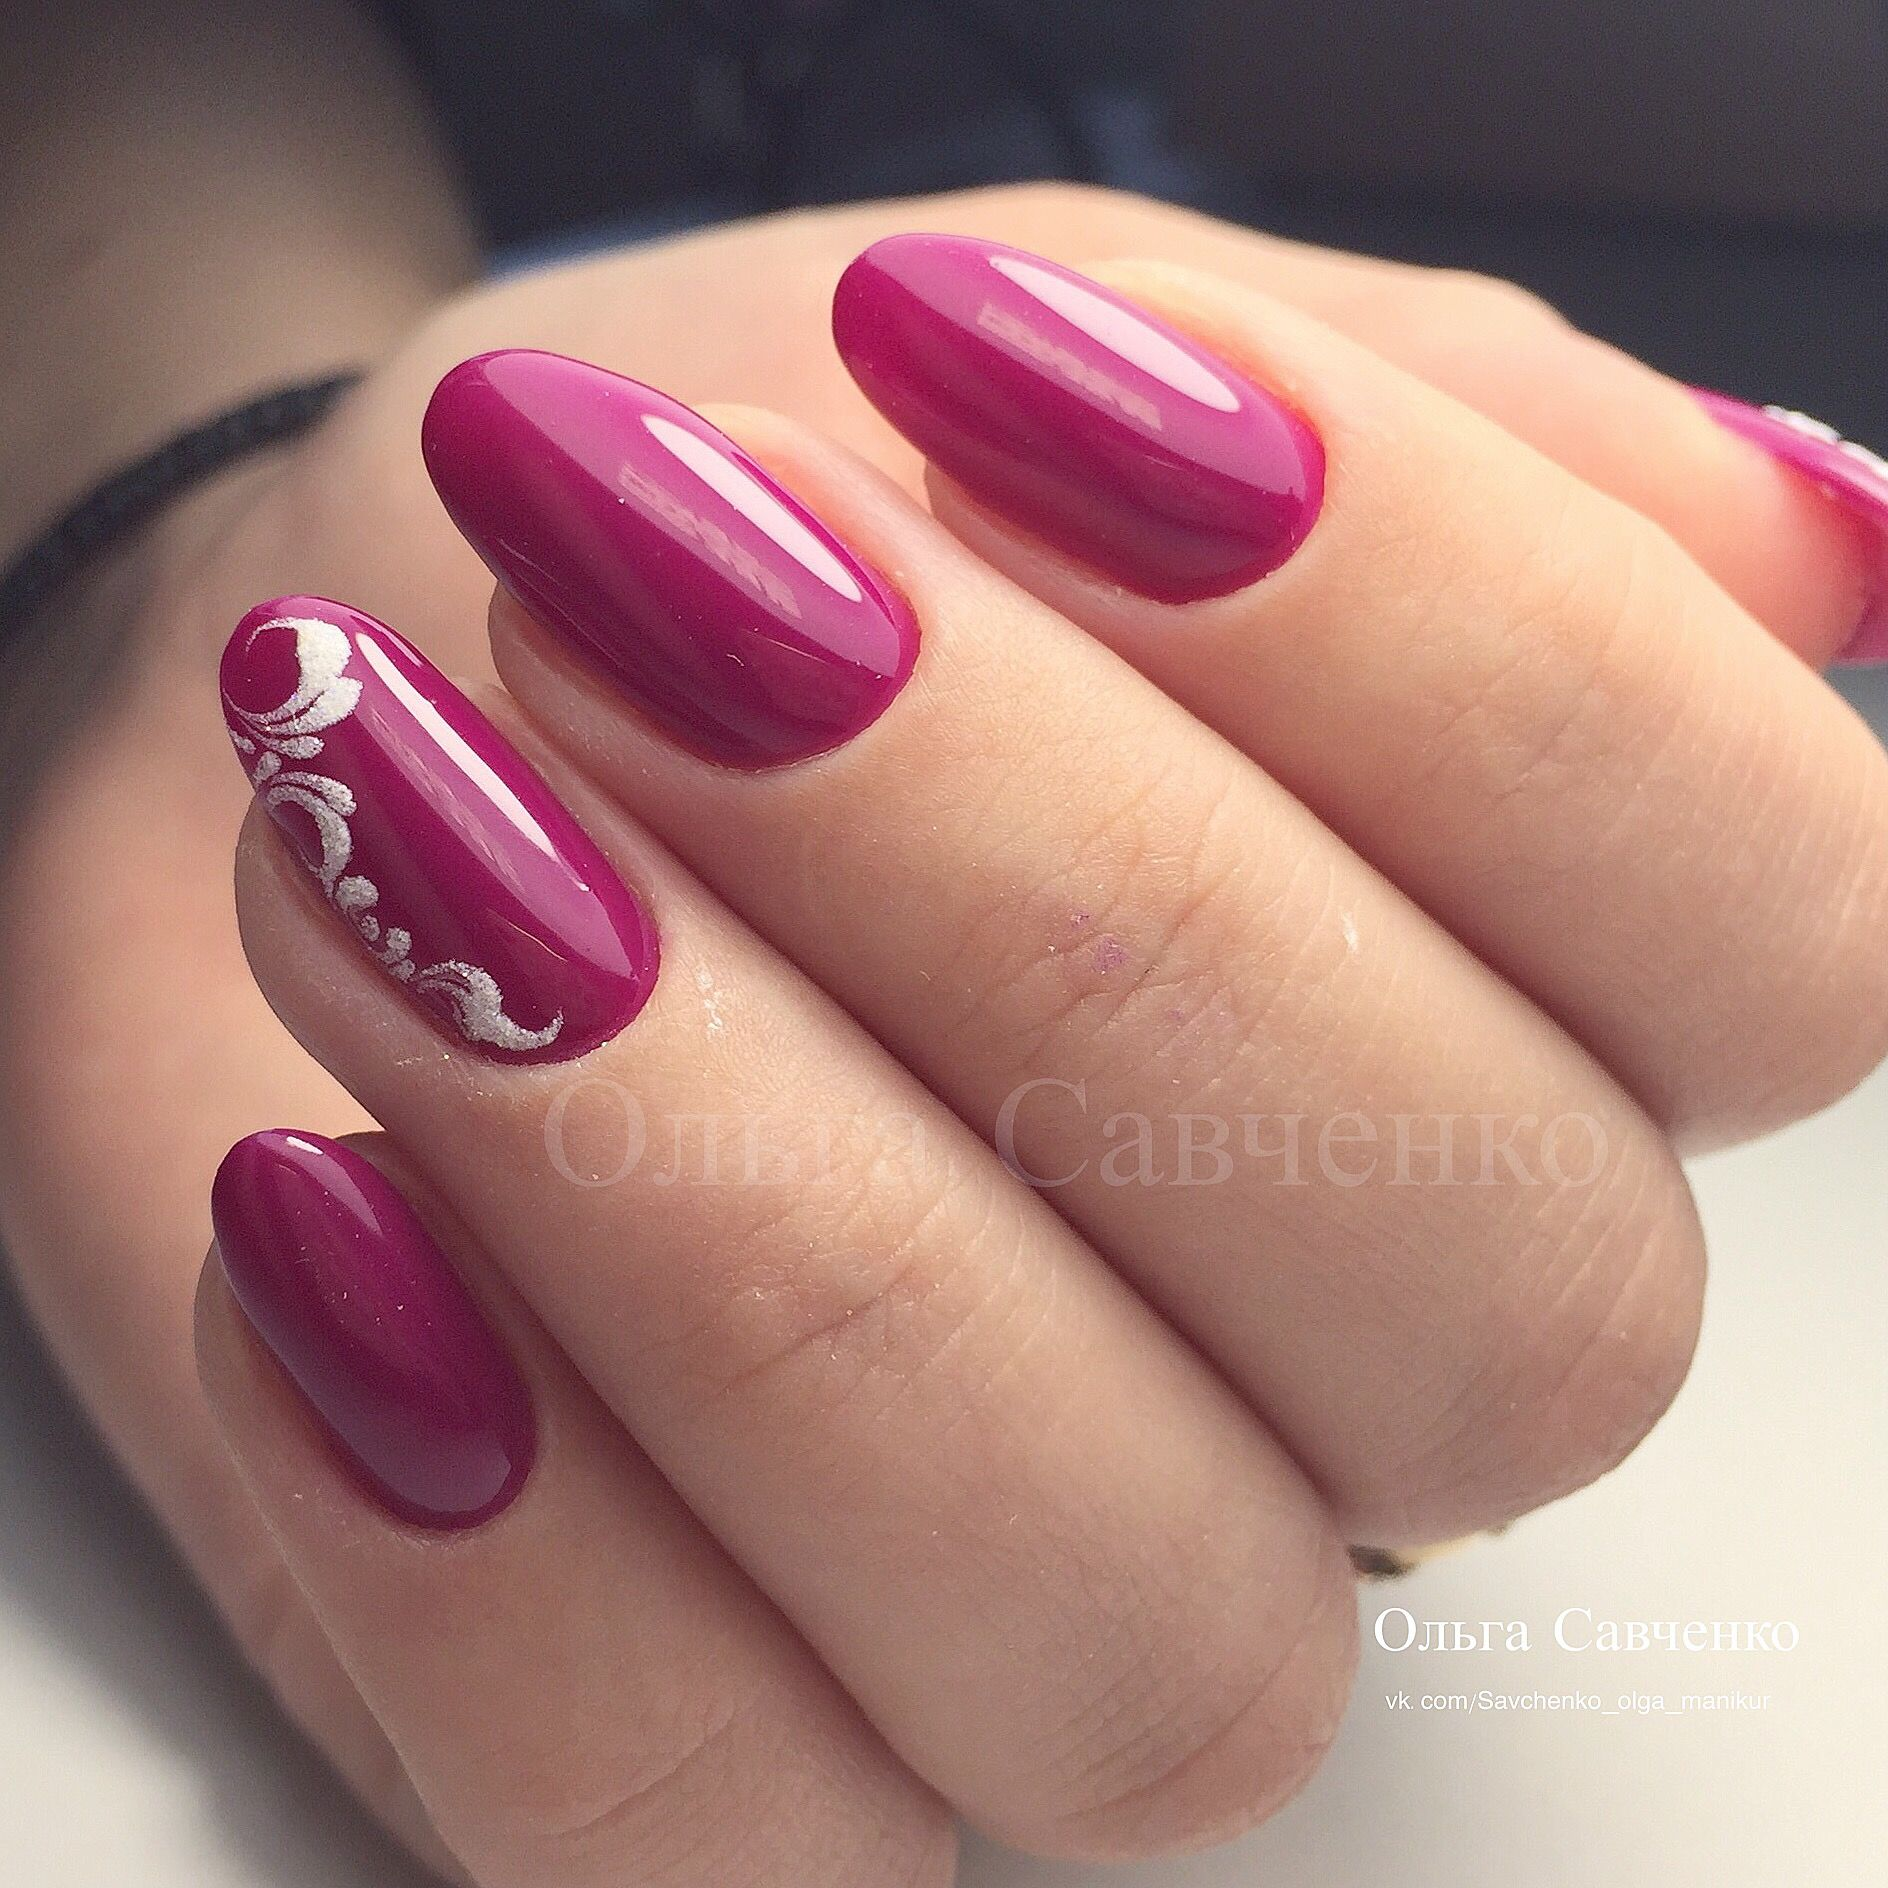 Perfect application of polish not fond of color but beautifully